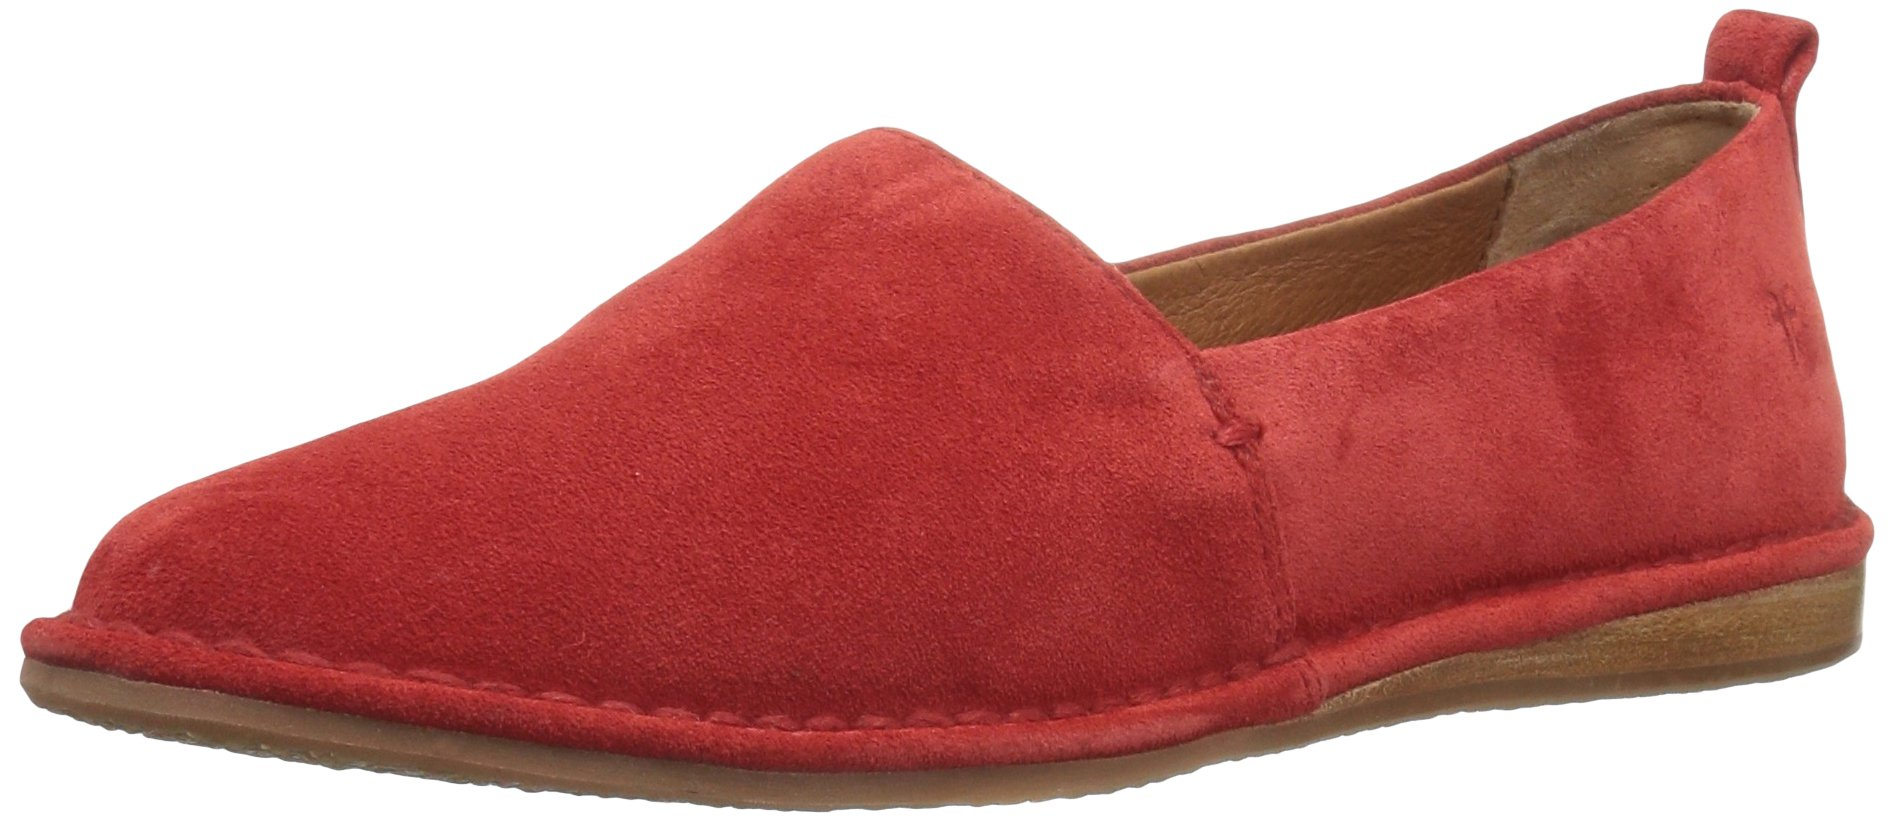 FRYE Women's Helena a Line Moccasin, Red, 5.5 M US